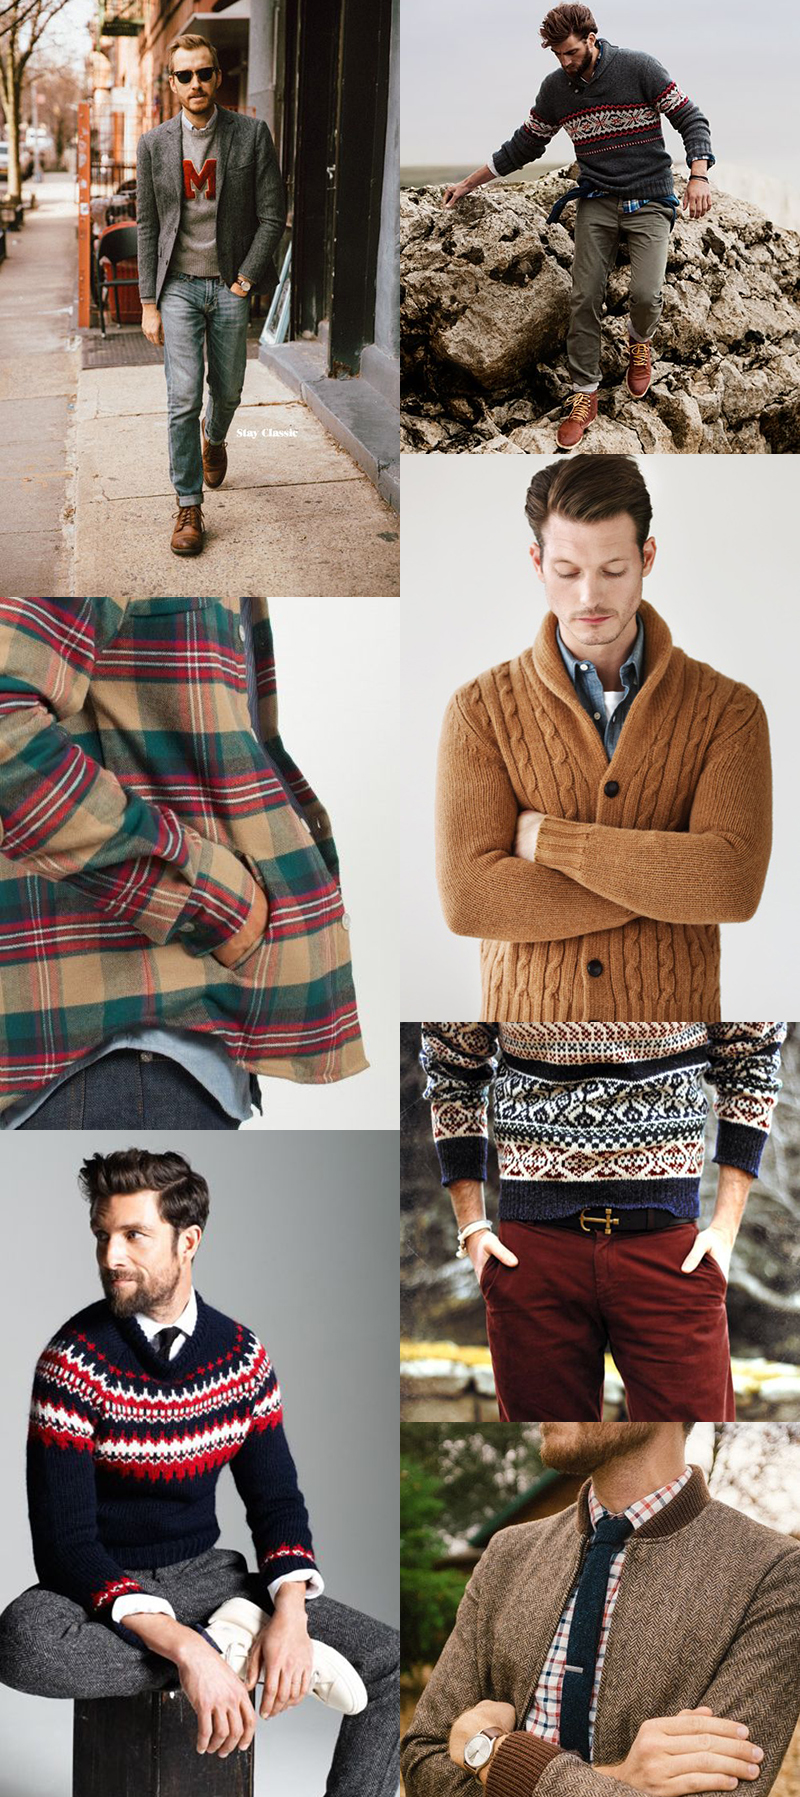 Mode And The City - www.modeandthecity.net - Le vestiaire Masculin (inspiration)